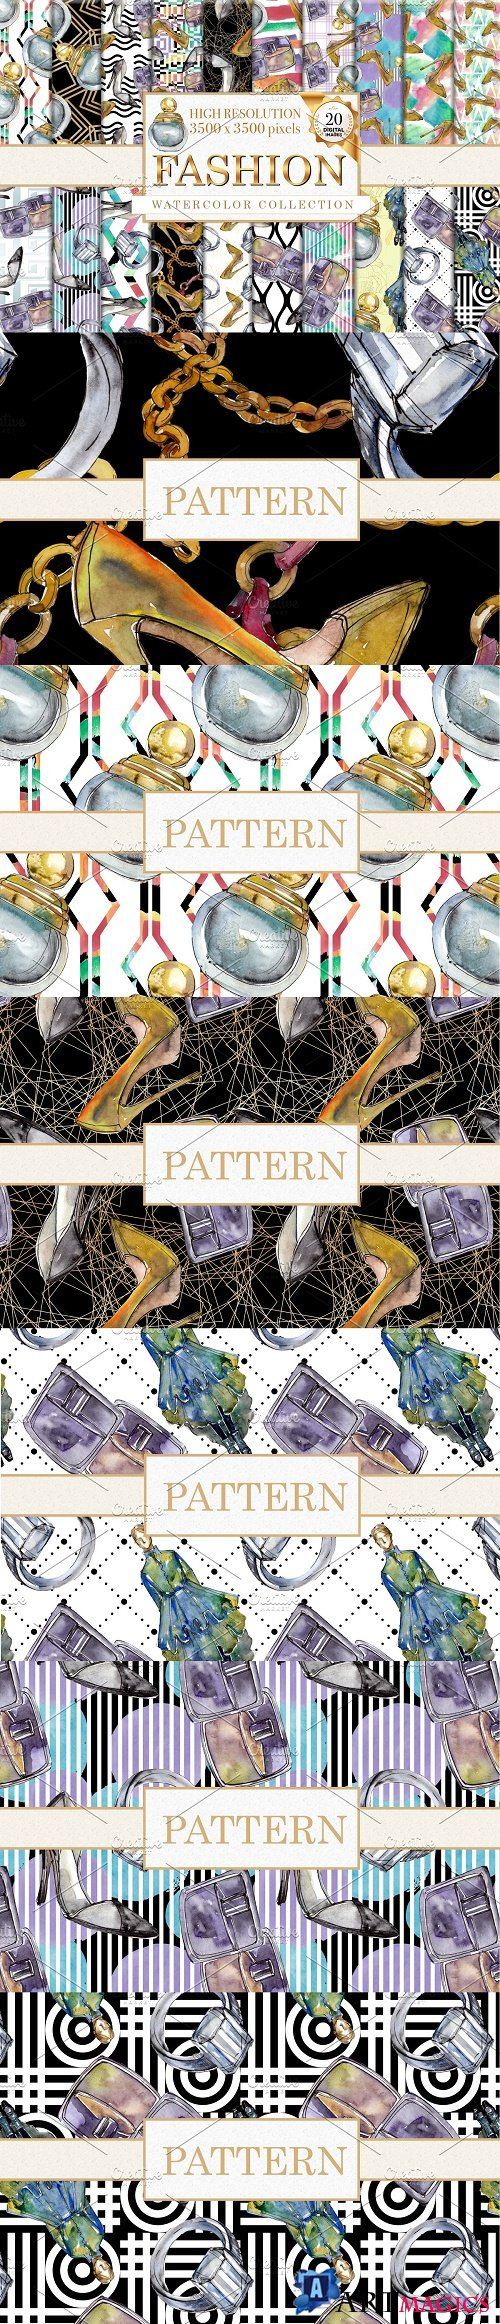 Fashion patterns Watercolor png - 3840832